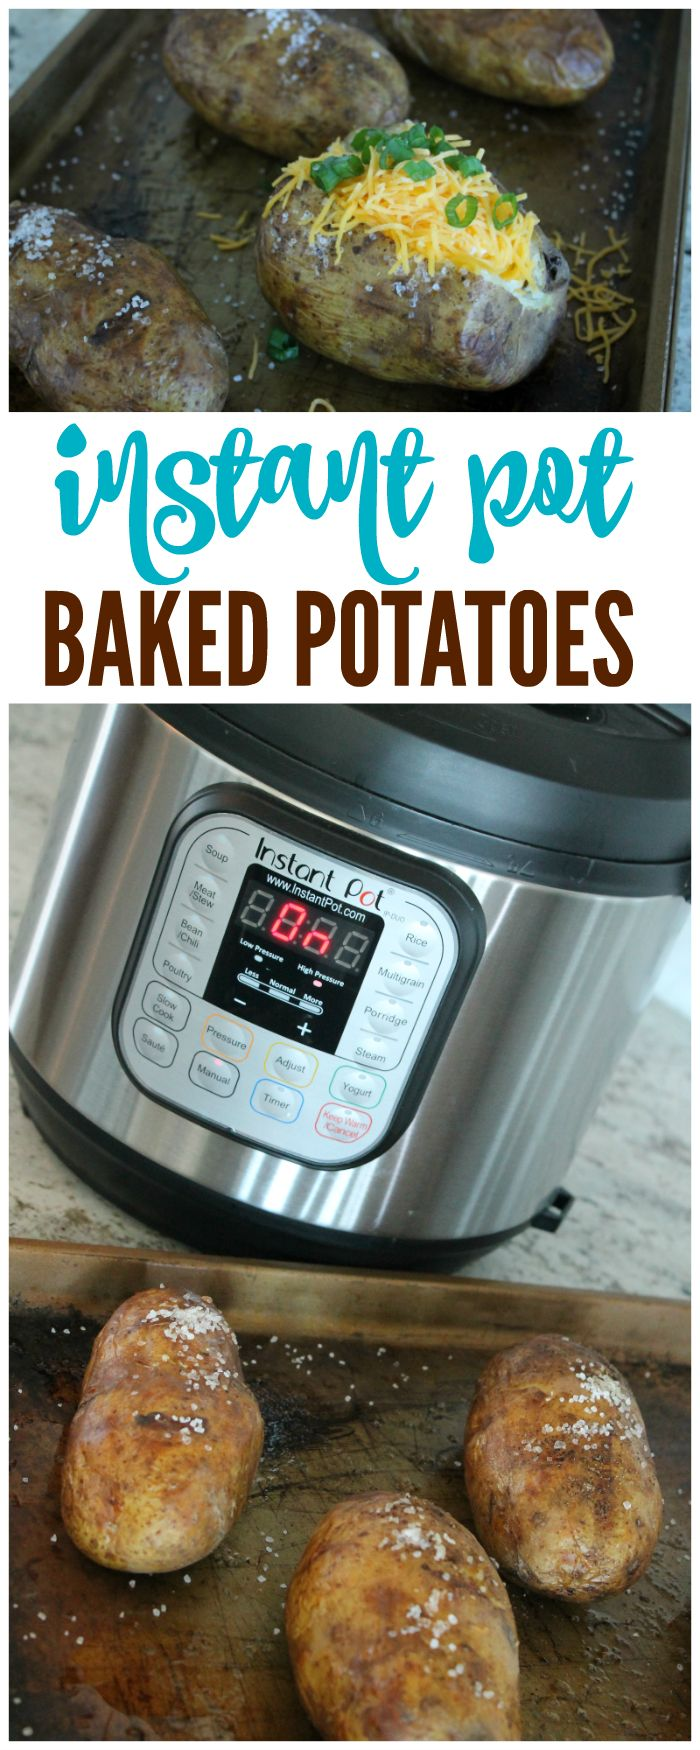 I Want To Show Y'all How To Make Baked Potatoes In The Instant Pot